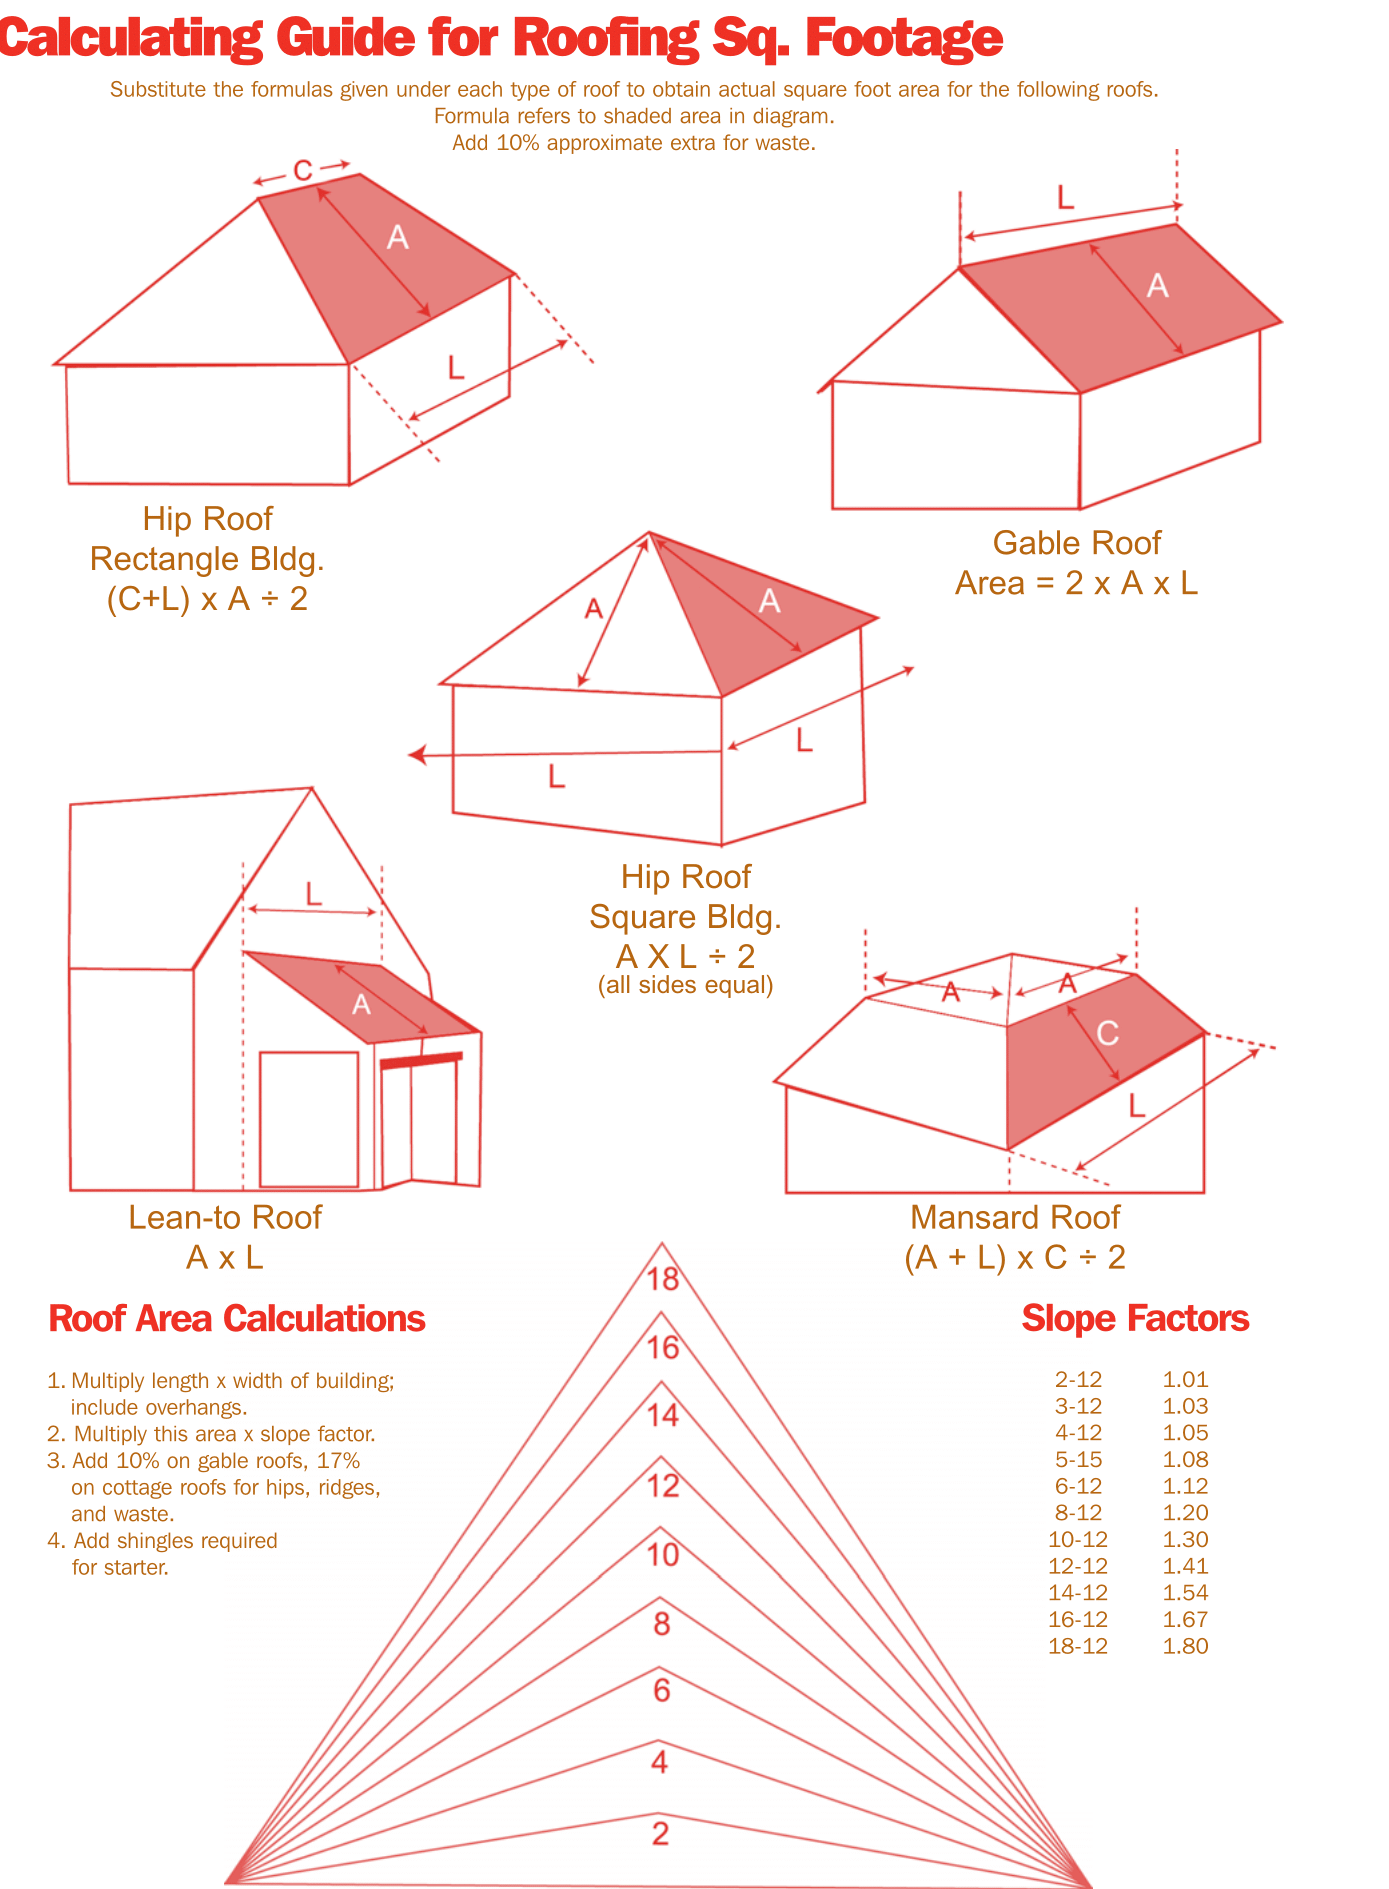 Roofing Calculator - Estimate Roof Cost per Sq. Ft. - Free Roof Quotes